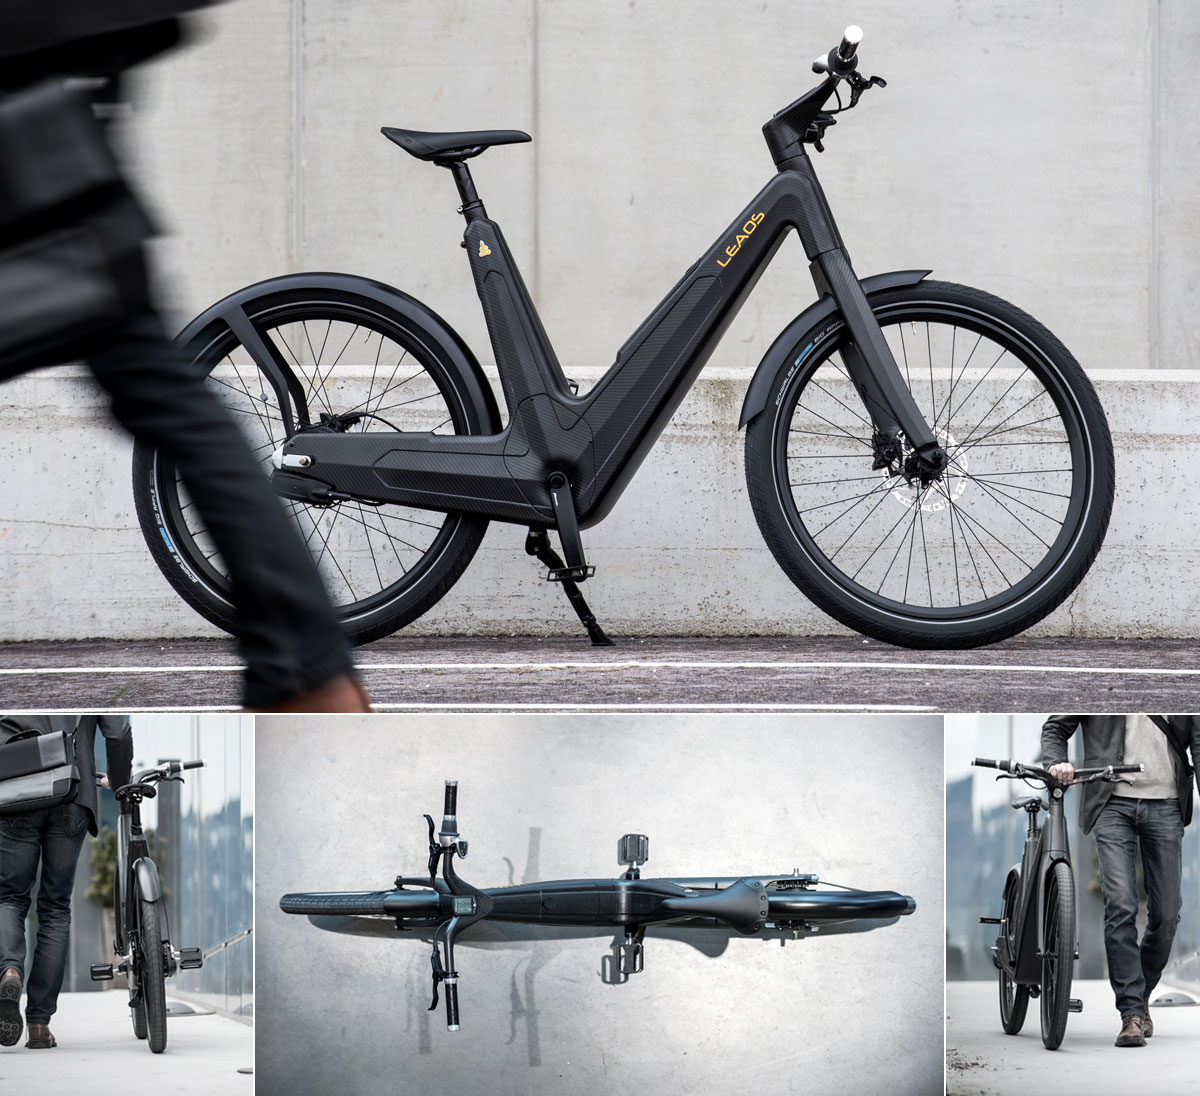 LEAOS e-bike designed by Francesco Sommacal - Zerofra design_1